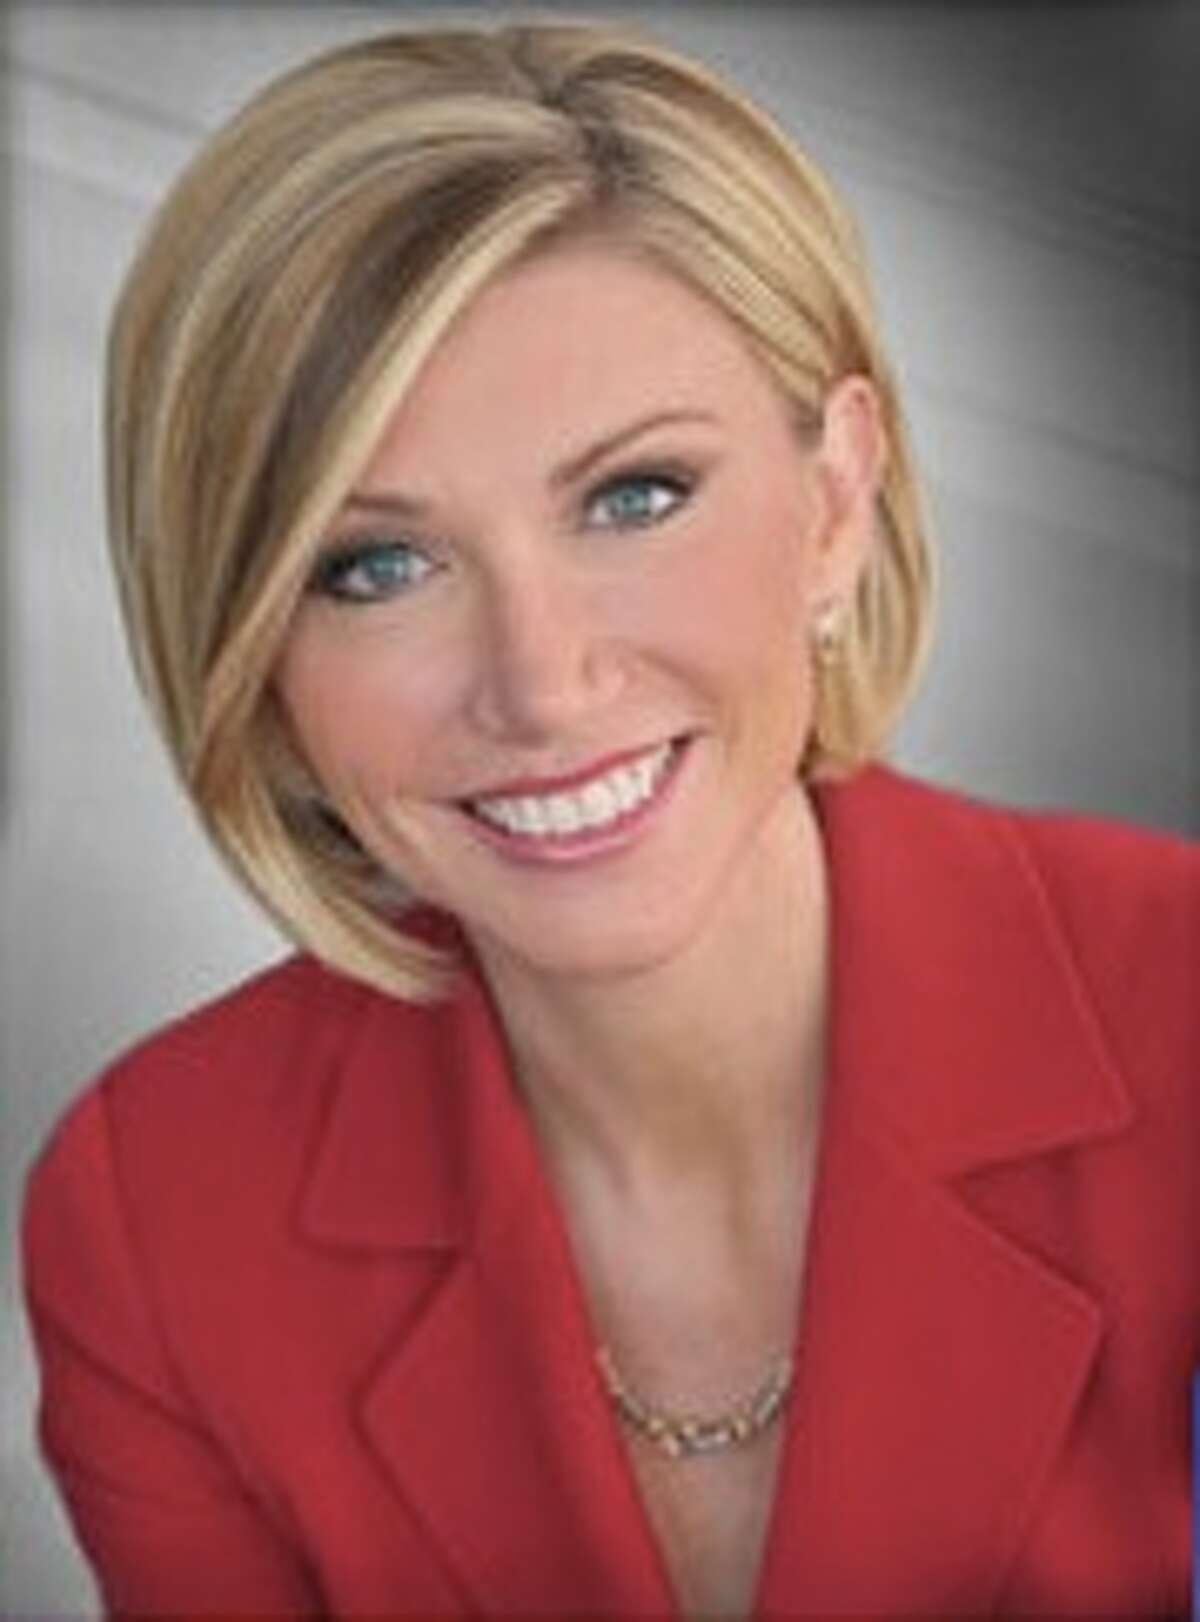 After leaving KHOU, Haas started her own PR business.